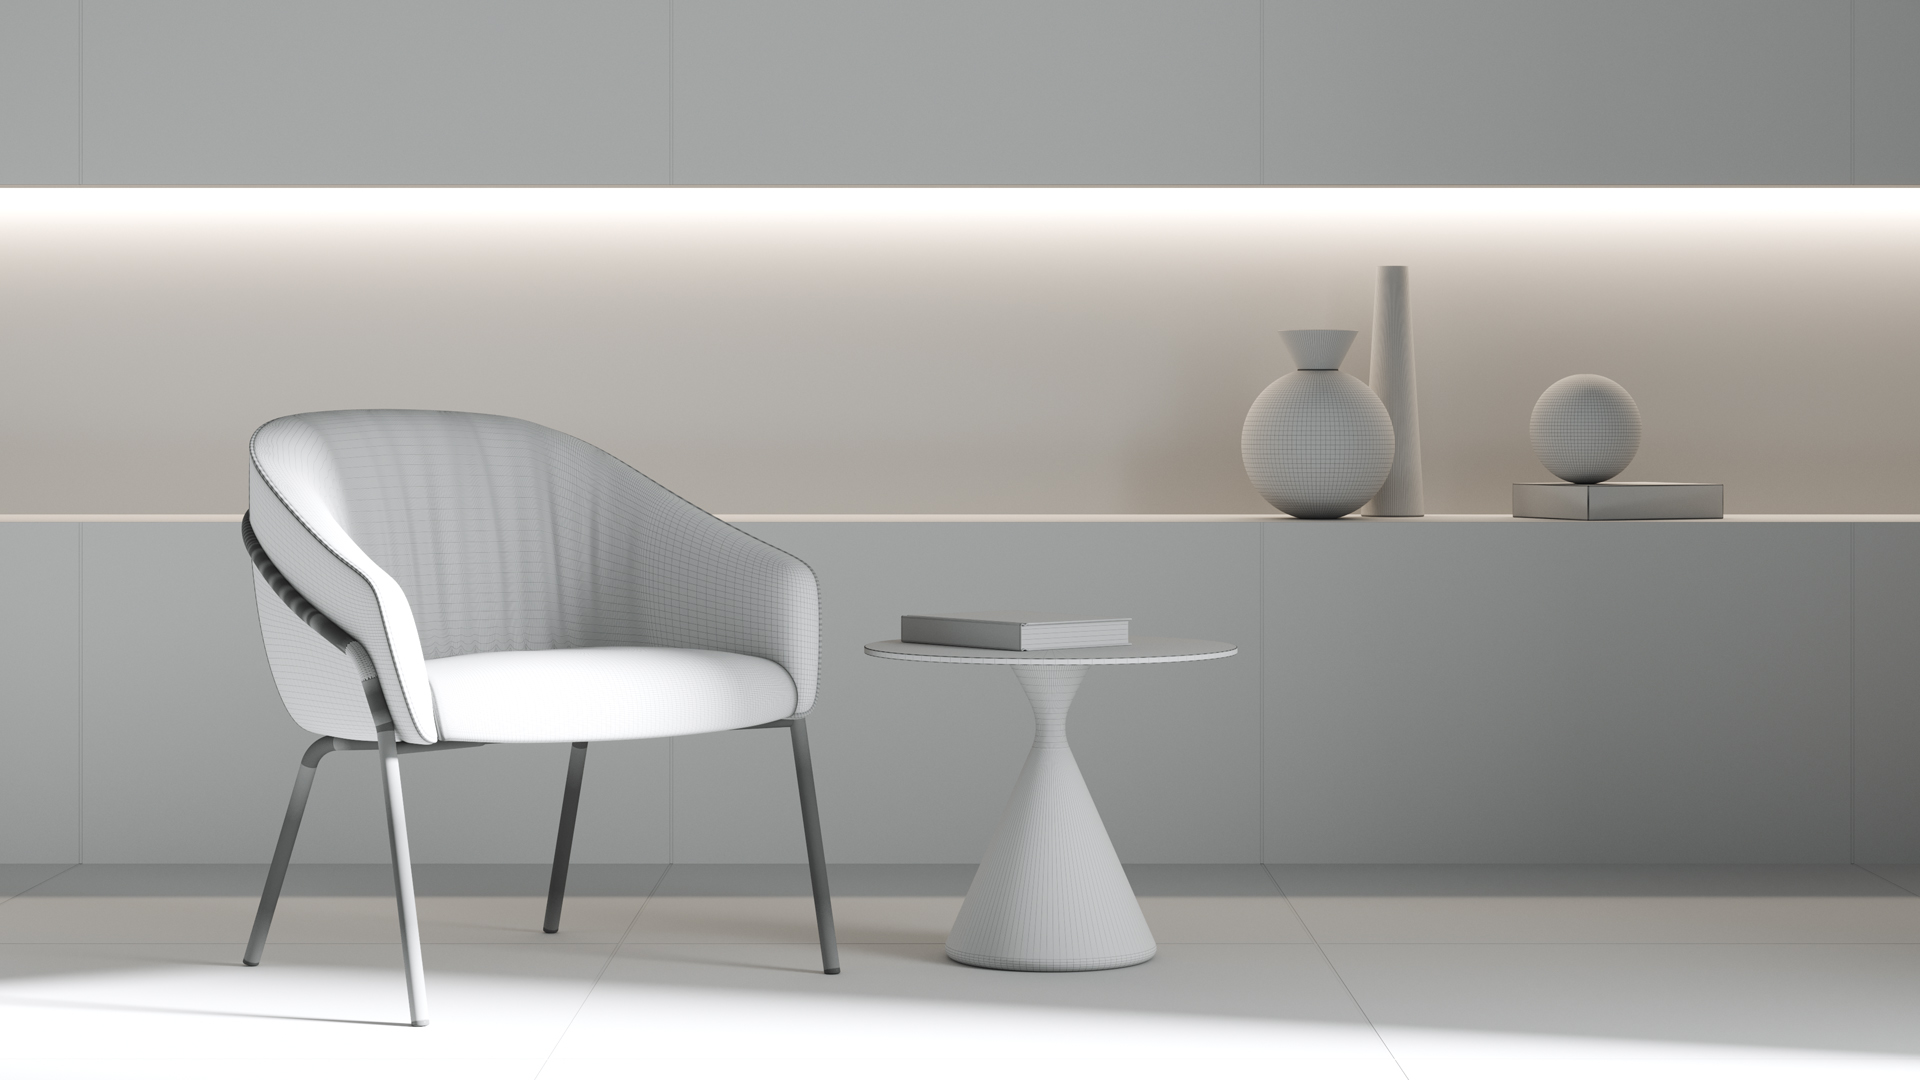 3D Furniture Modelling CGI Visualisation - CGI Services